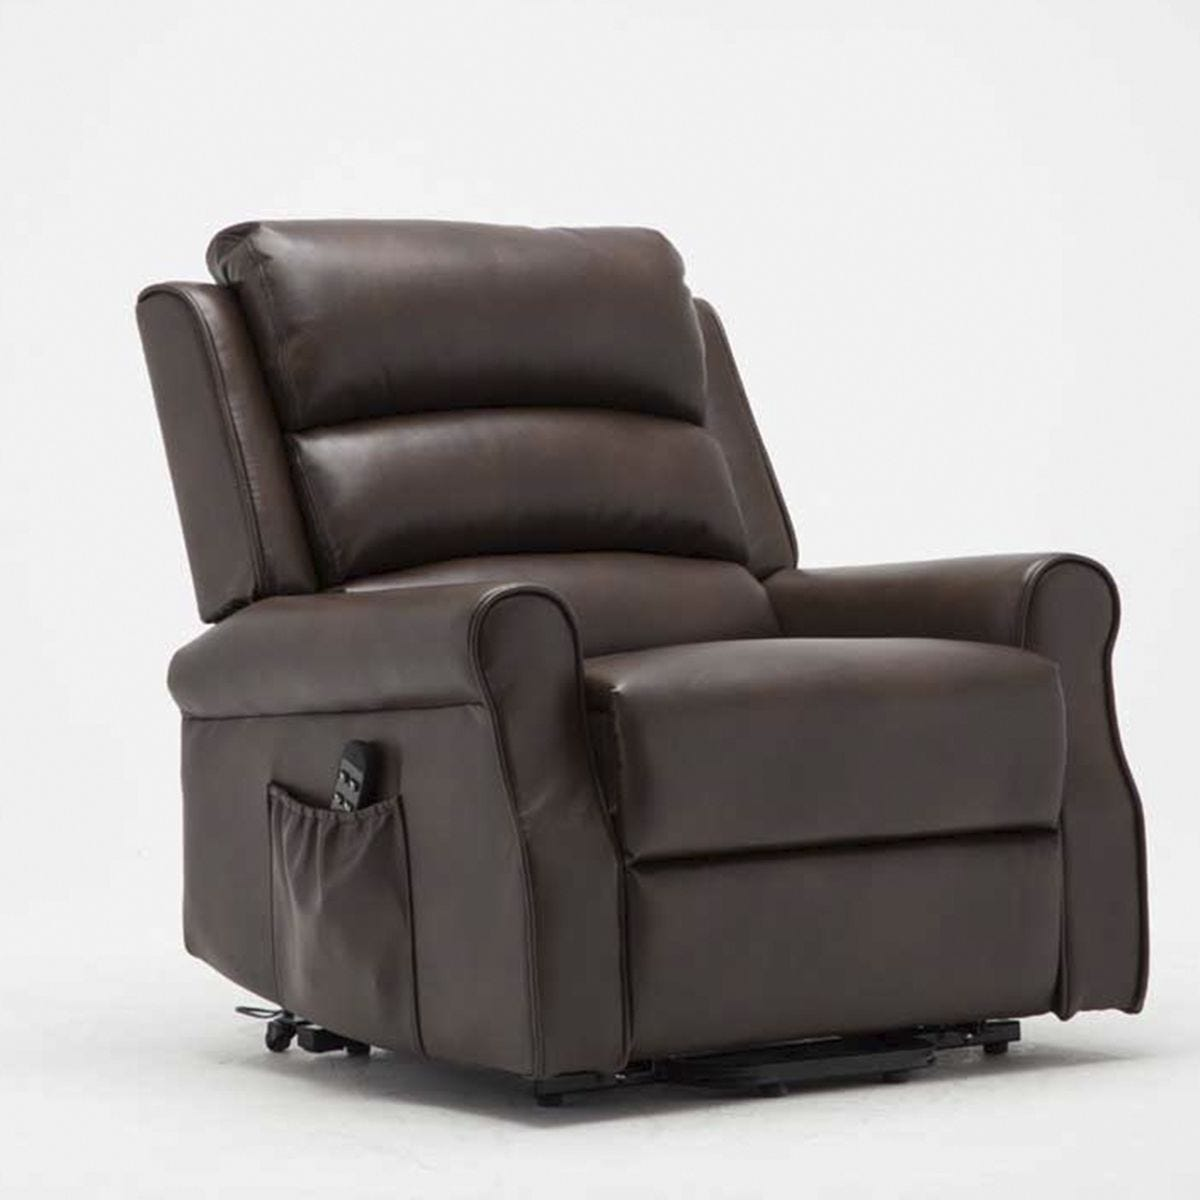 Balio Twin Motor Rise & Recline Chair (Normal Width) - Brown